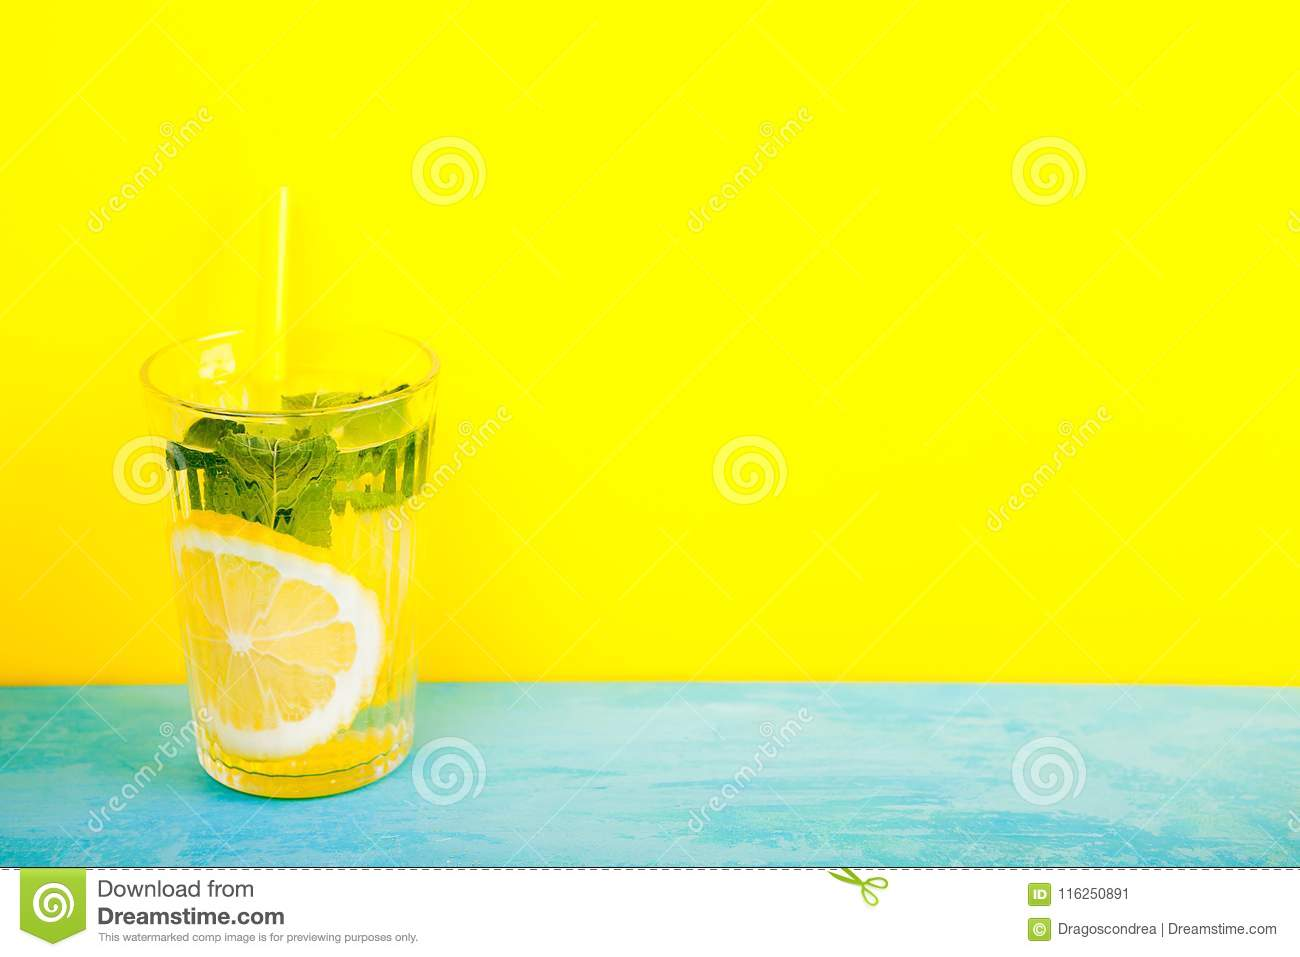 100+ Lyrical Lemonade Background Yellow – yasminroohi